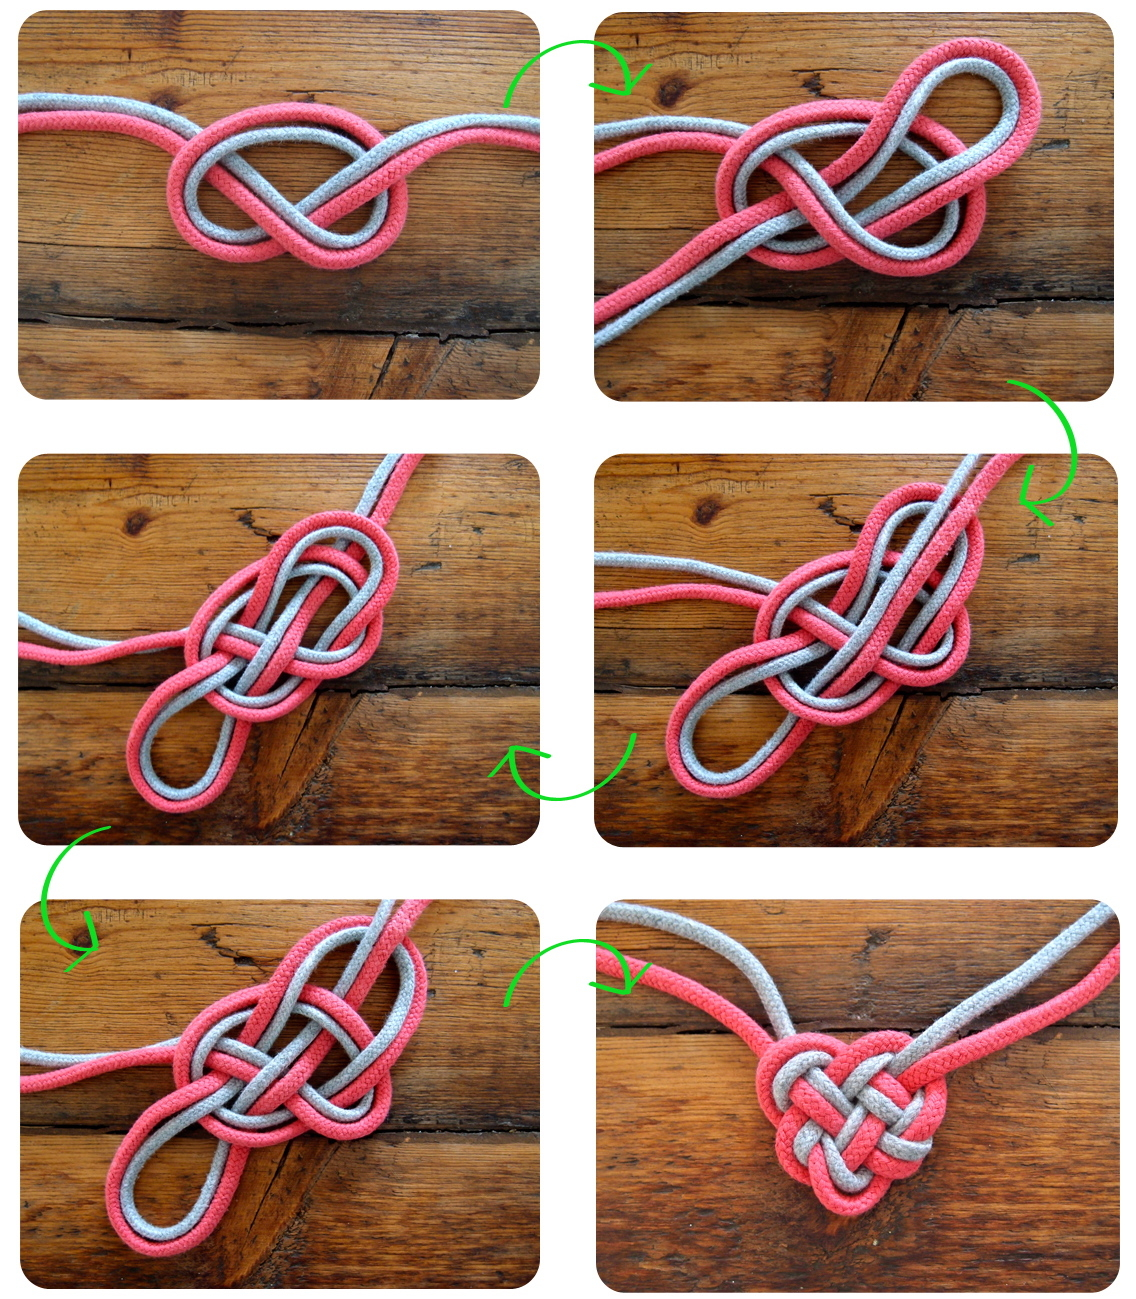 KNOT Quotes Like Success